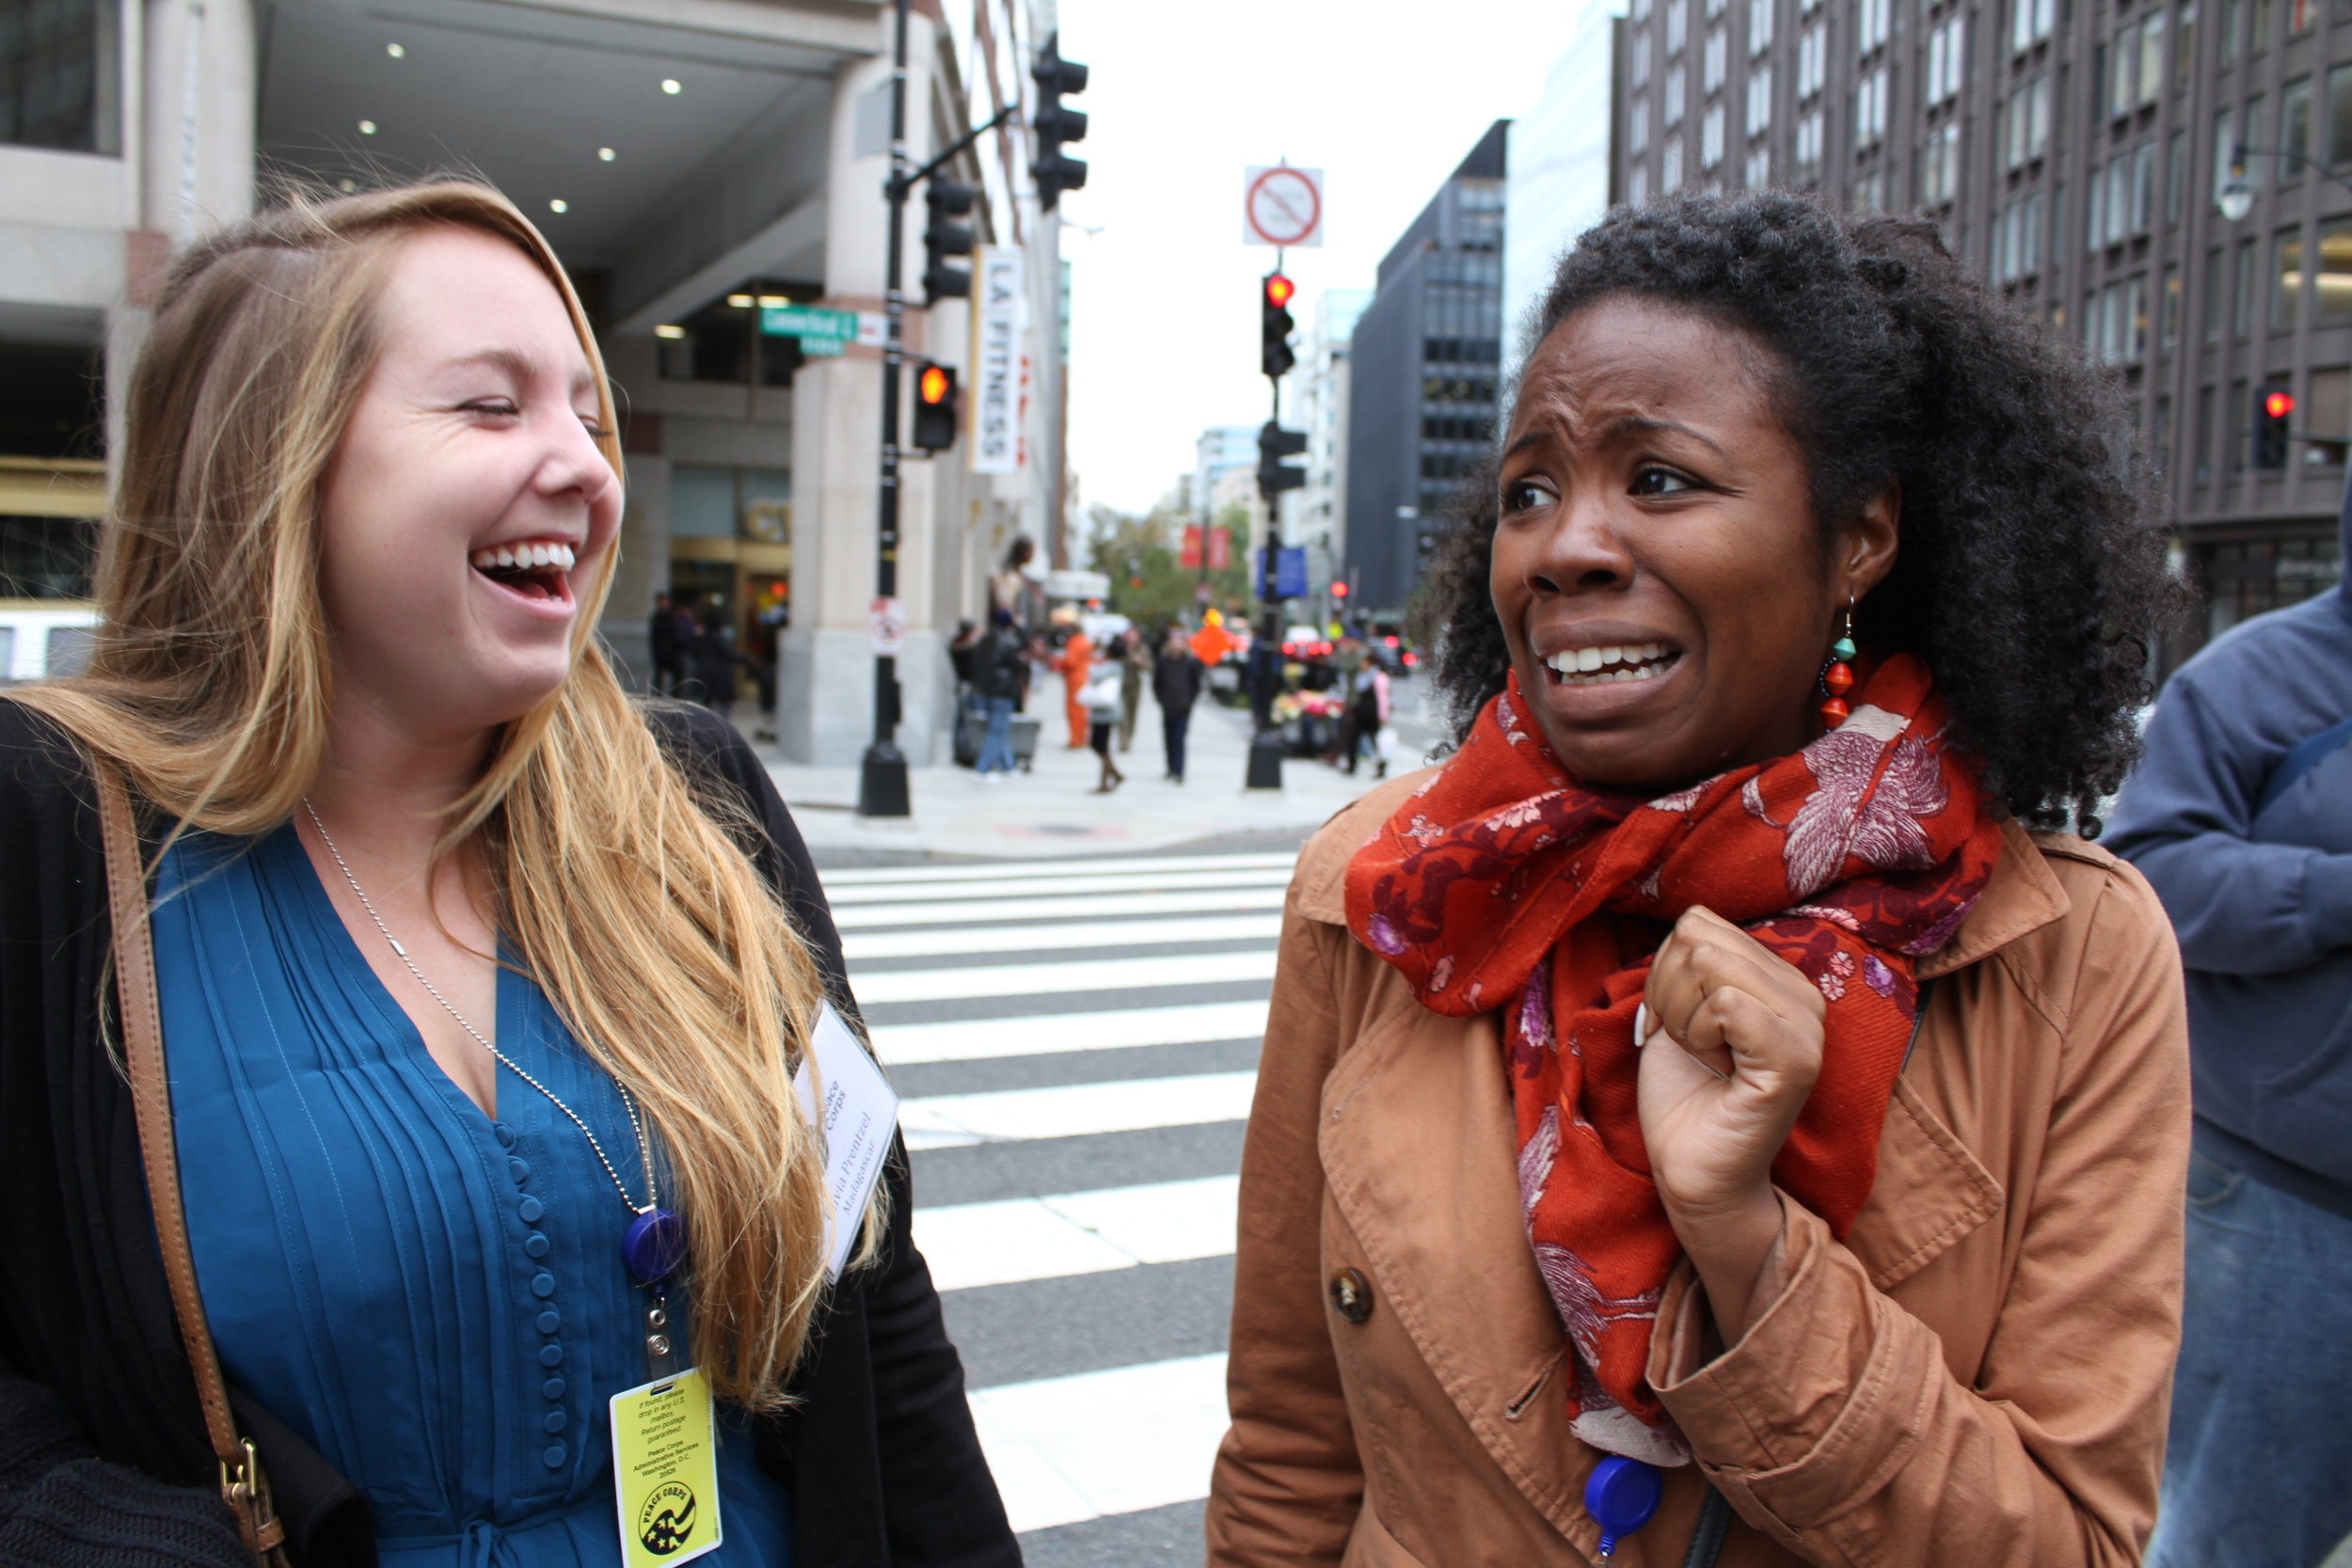 Here's me laughing at Brittany's fear of people wearing masks after passing a zombie on the street. I'm sorry, Brittany.